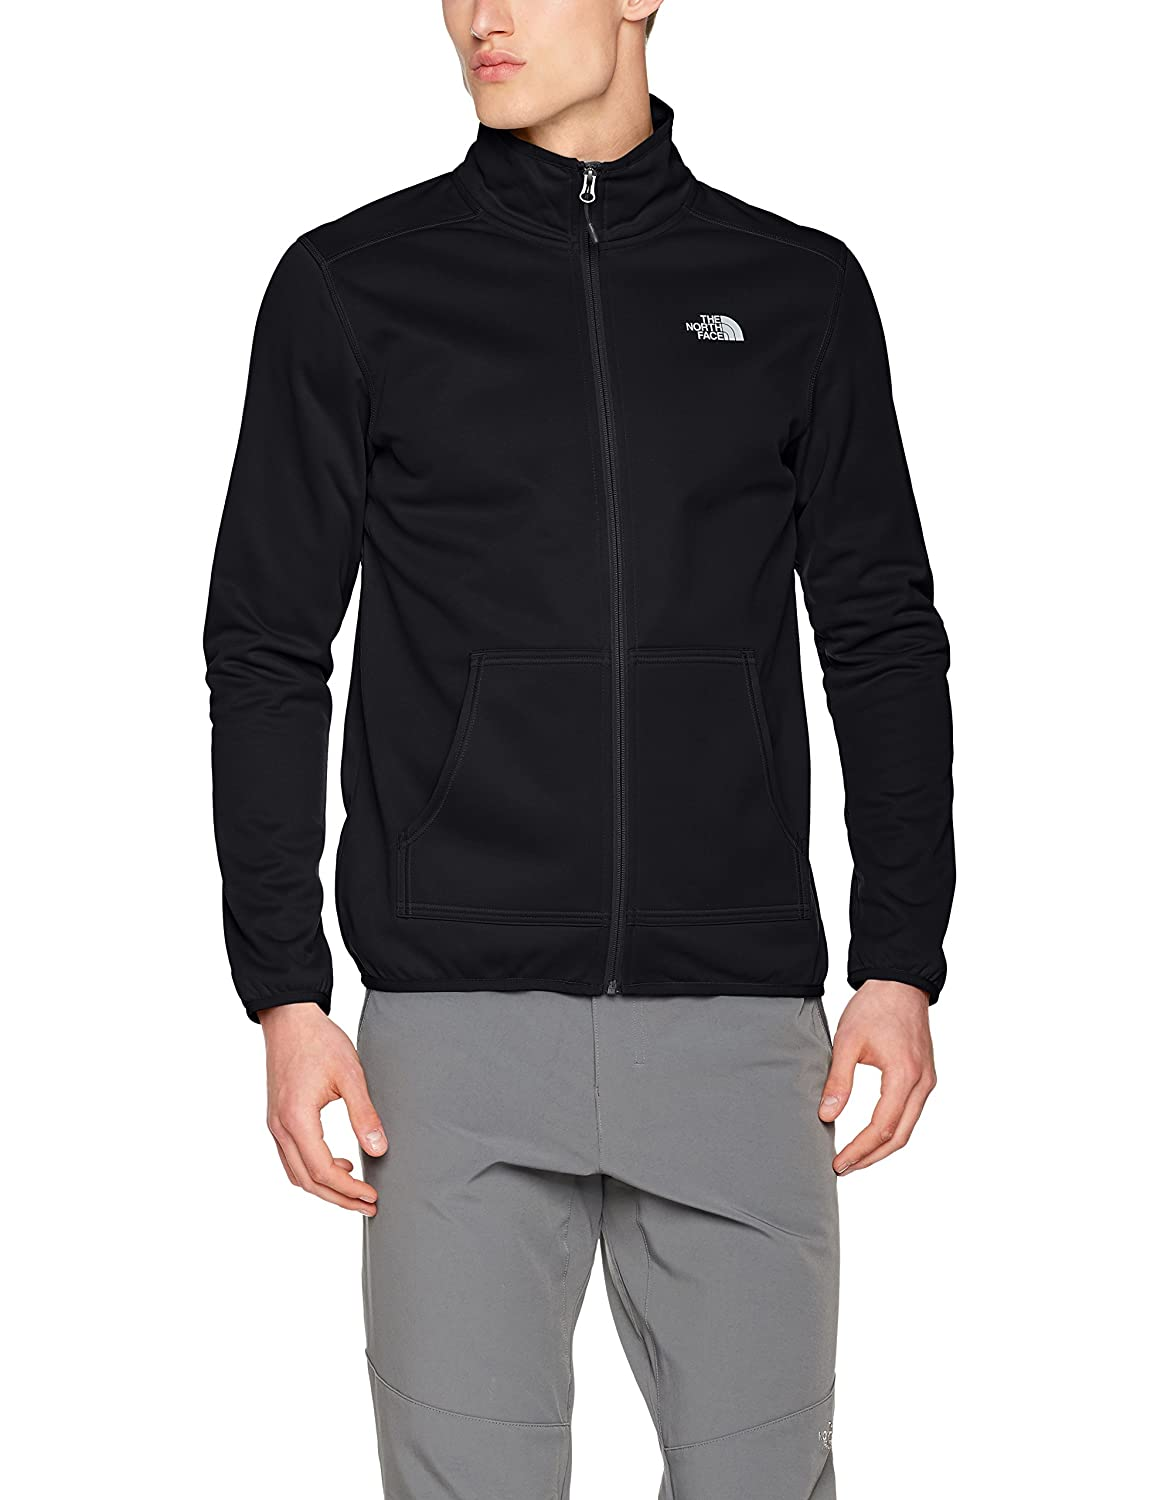 TALLA L. The North Face Tanken Full Zip Chaqueta, Hombre